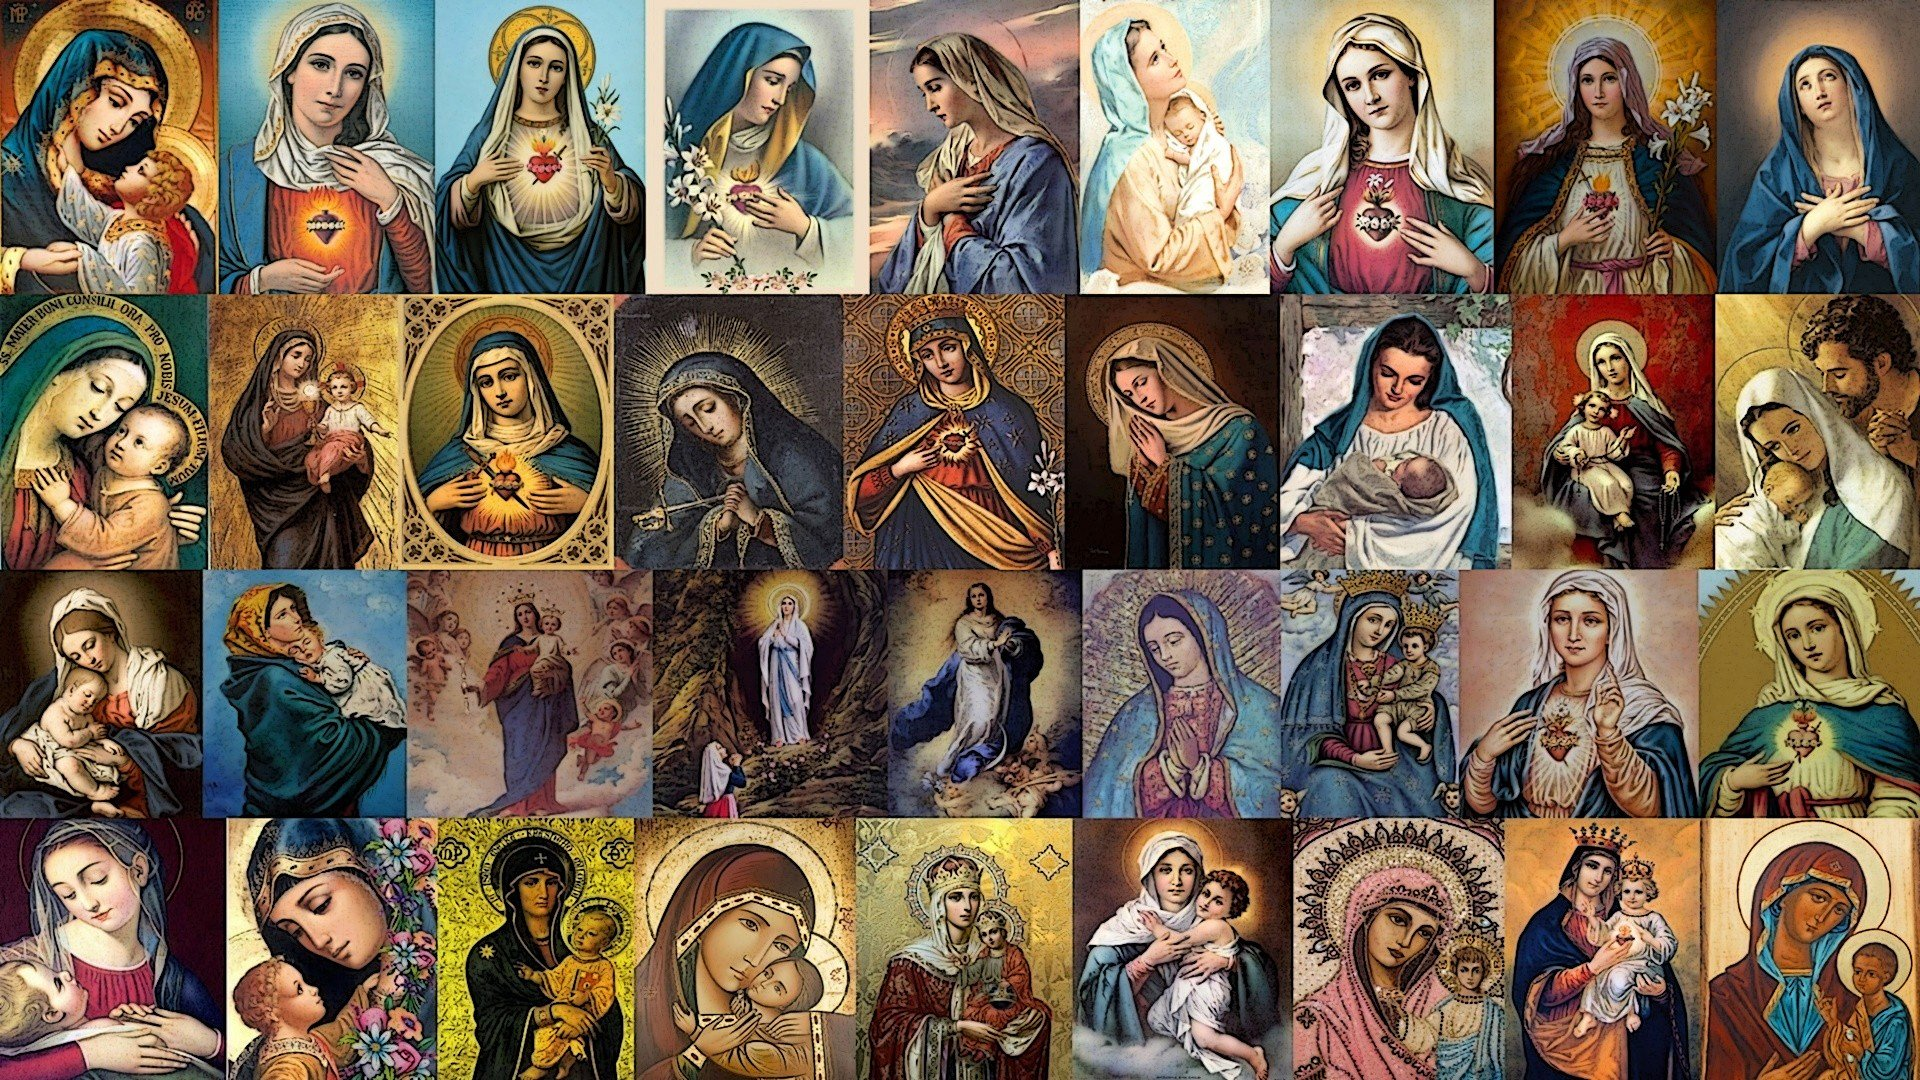 Virgin Mary, Jesus Christ, Collage, Christianity, Religion Wallpaper